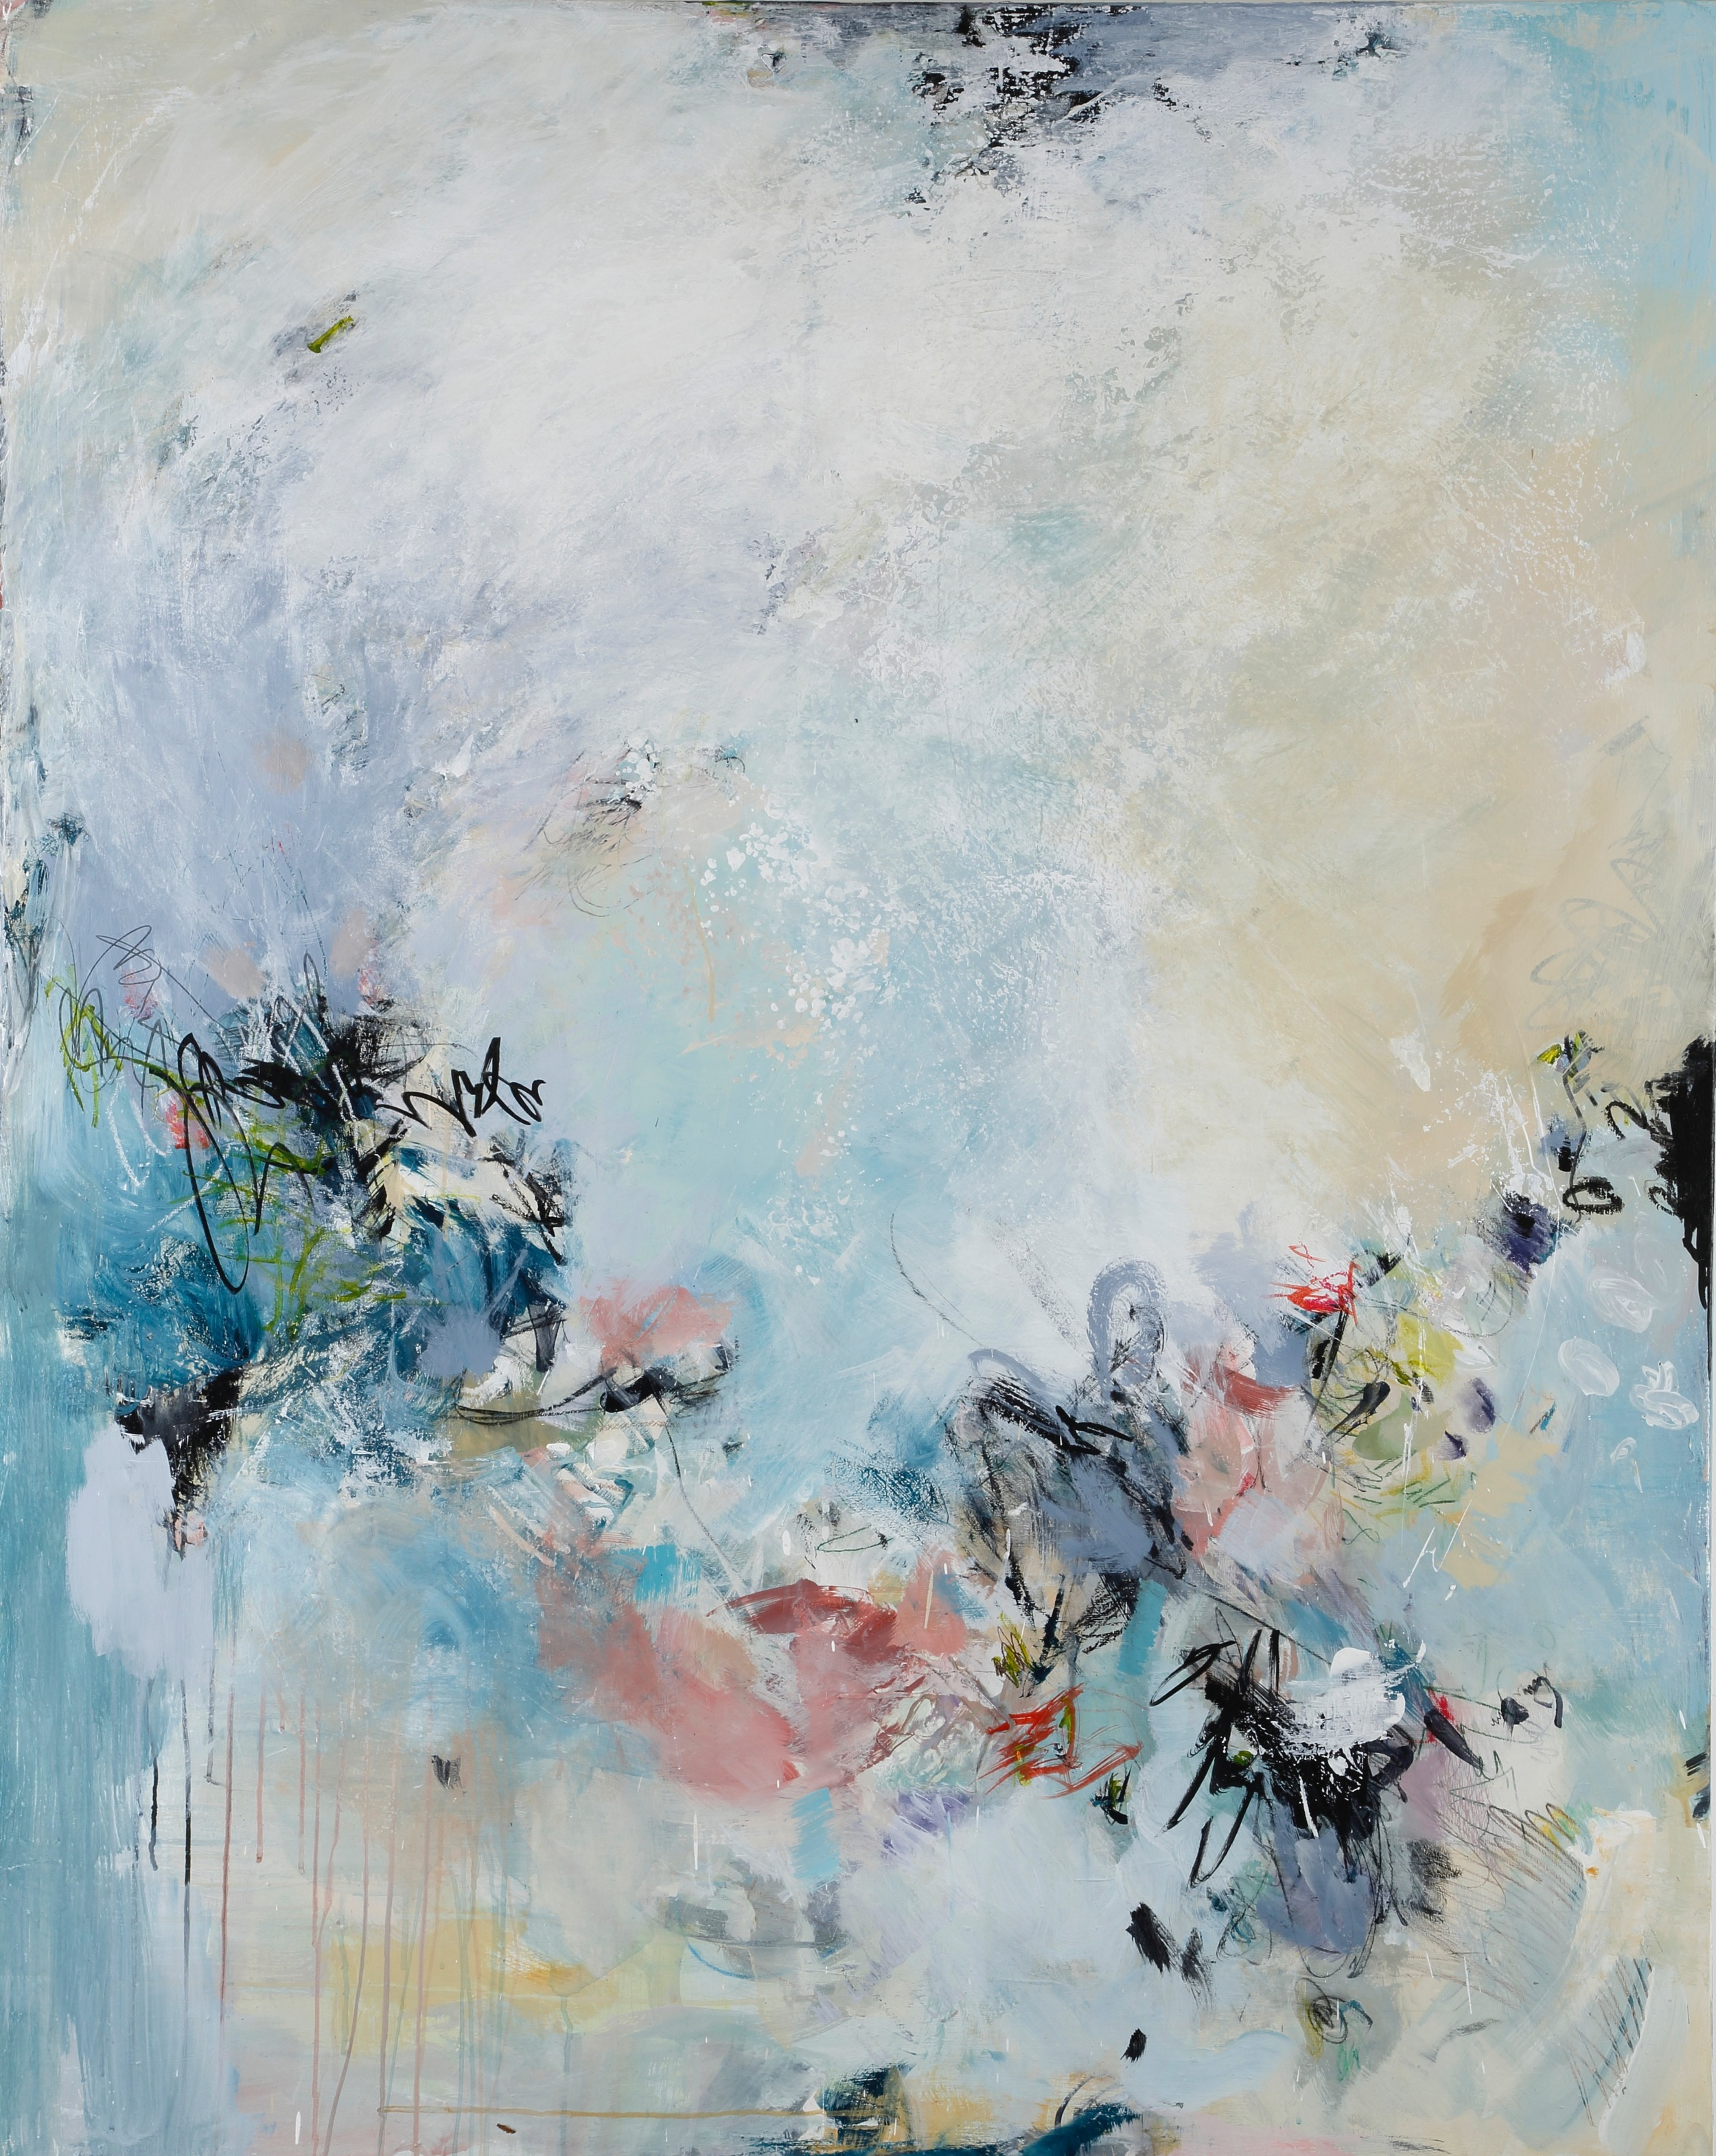 """""""Dive In"""" by Teri Dryden  , 36x48in, acrylic on canvas, $2500 